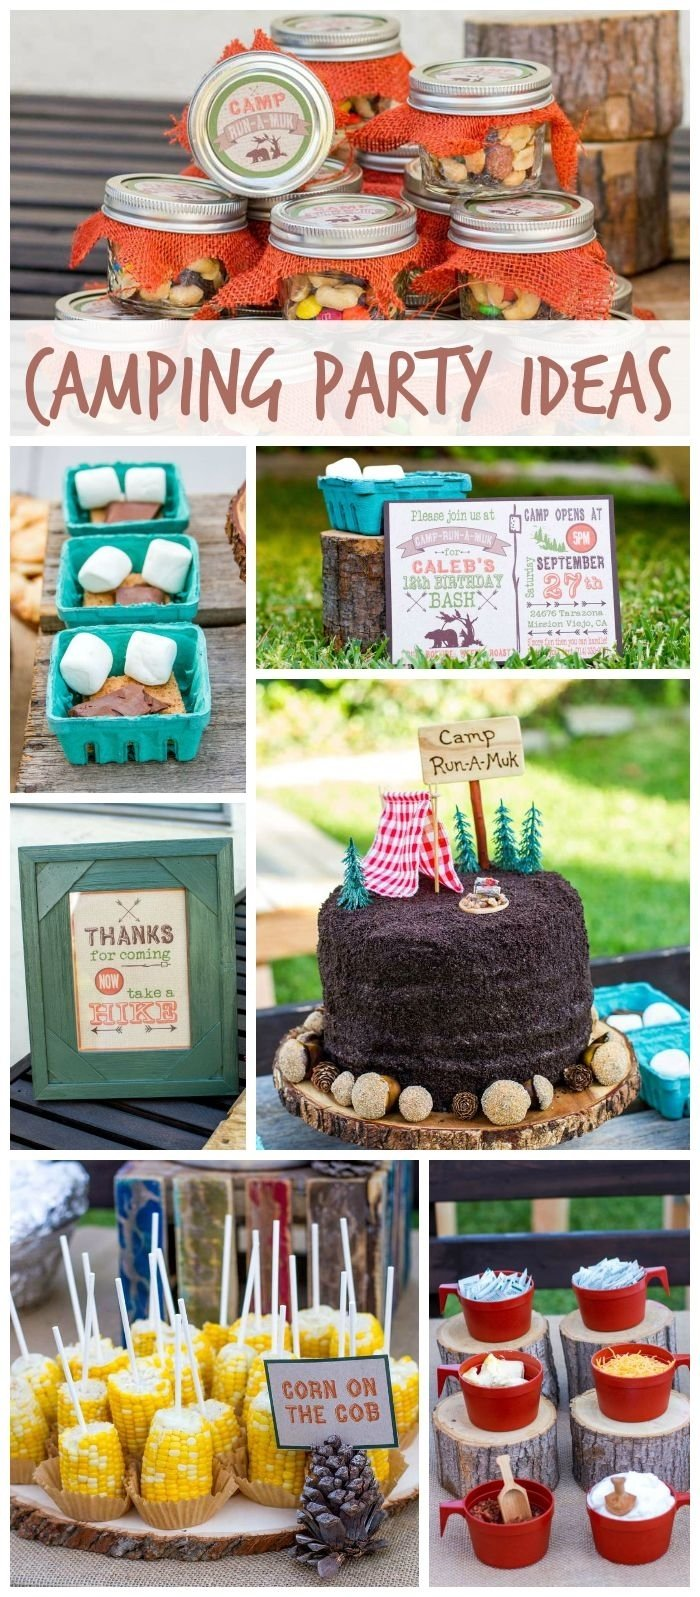 10 Stunning Kids Birthday Party Ideas Pinterest a backyard camping boy birthday party with fun foods smores mason 1 2020